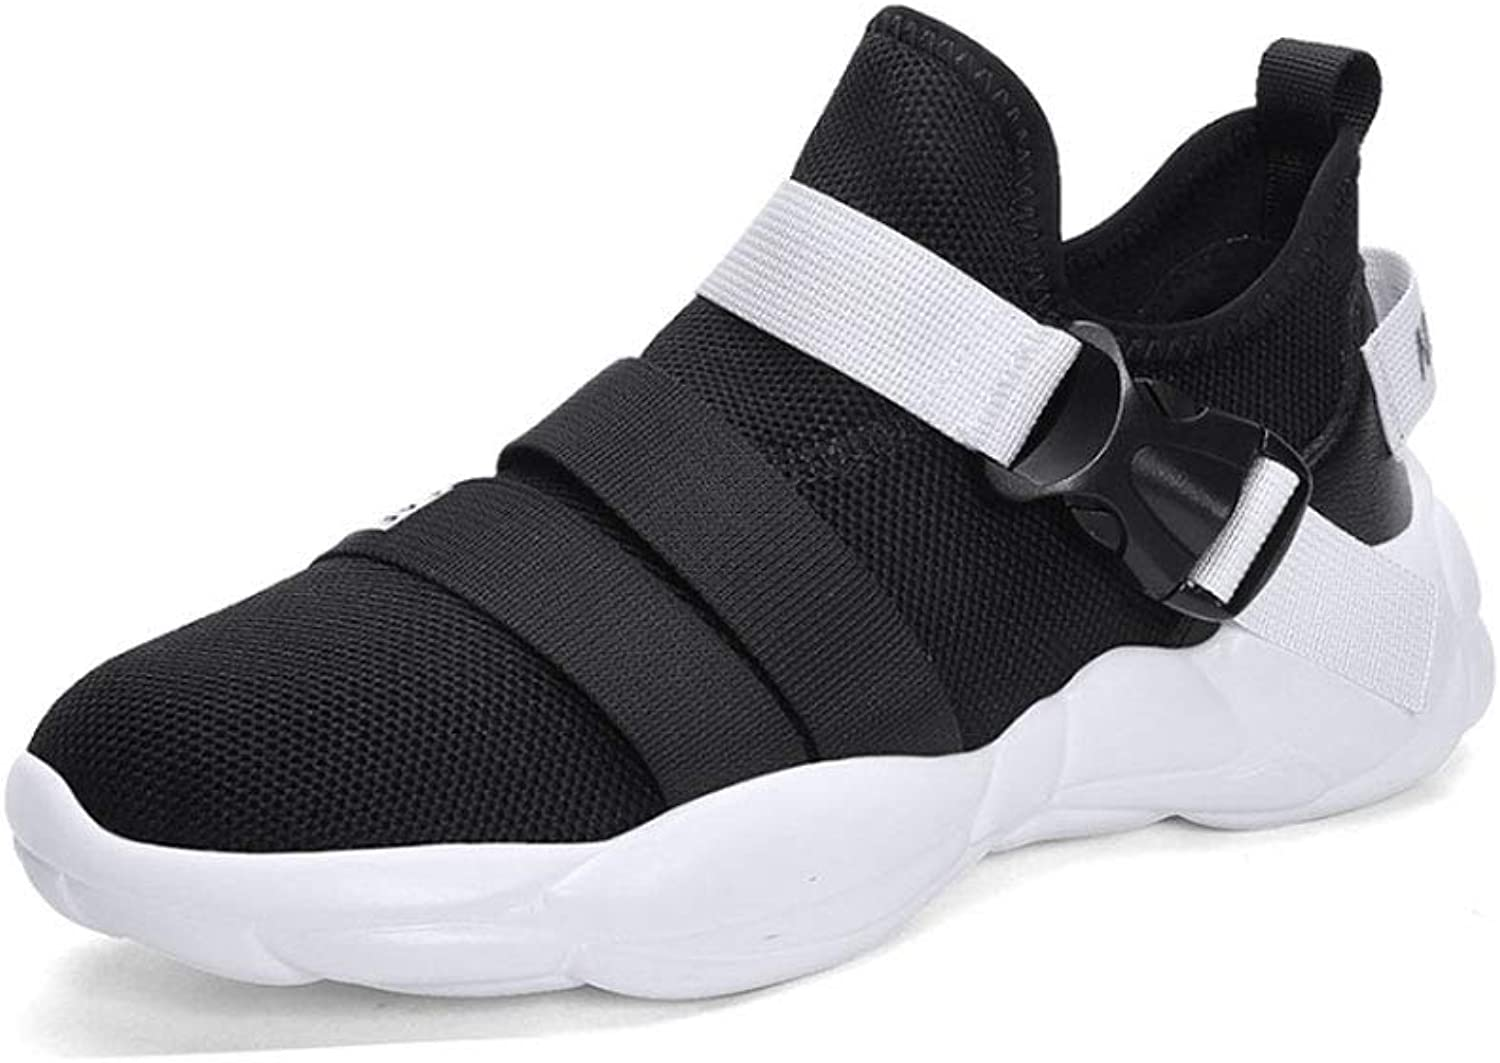 YSZDM Men'S Running shoes, Casual Elastic buckle Sports shoes Shock Absorption Breathable Non-Slip Flying Woven Mesh Sports shoes Men'S Outdoor Running shoes,Black,41